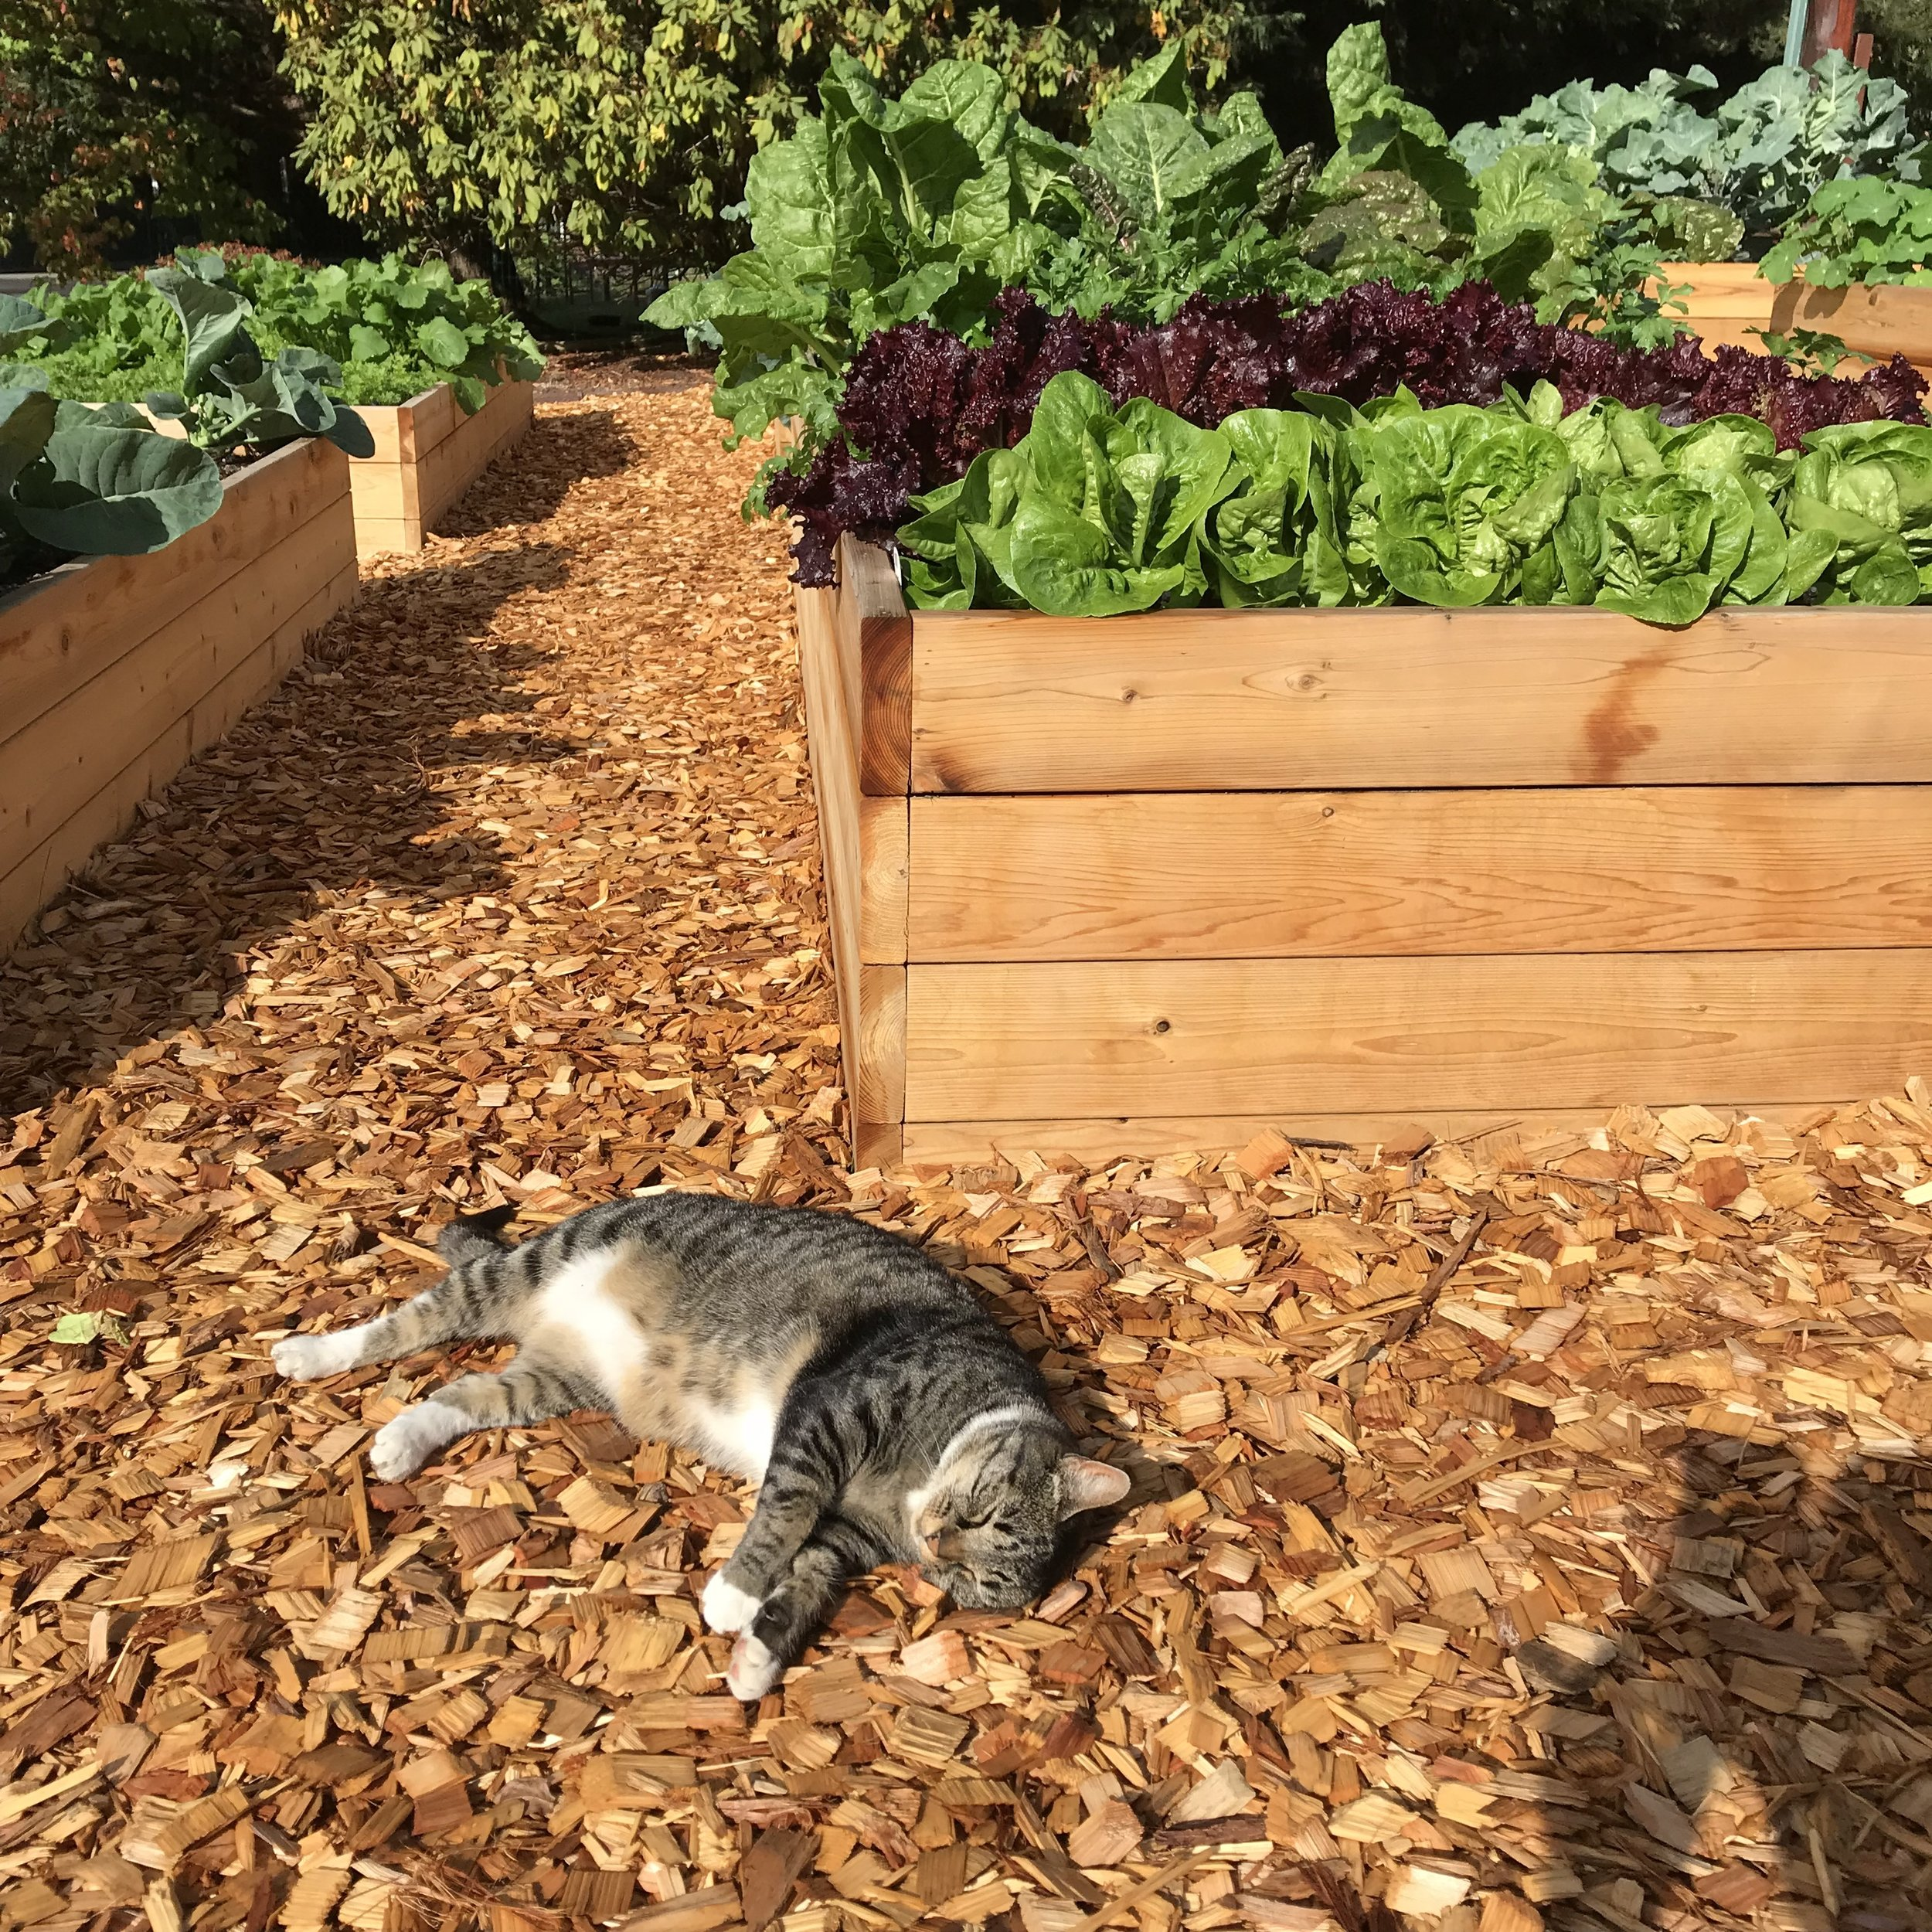 Snoozing in the vegetable garden